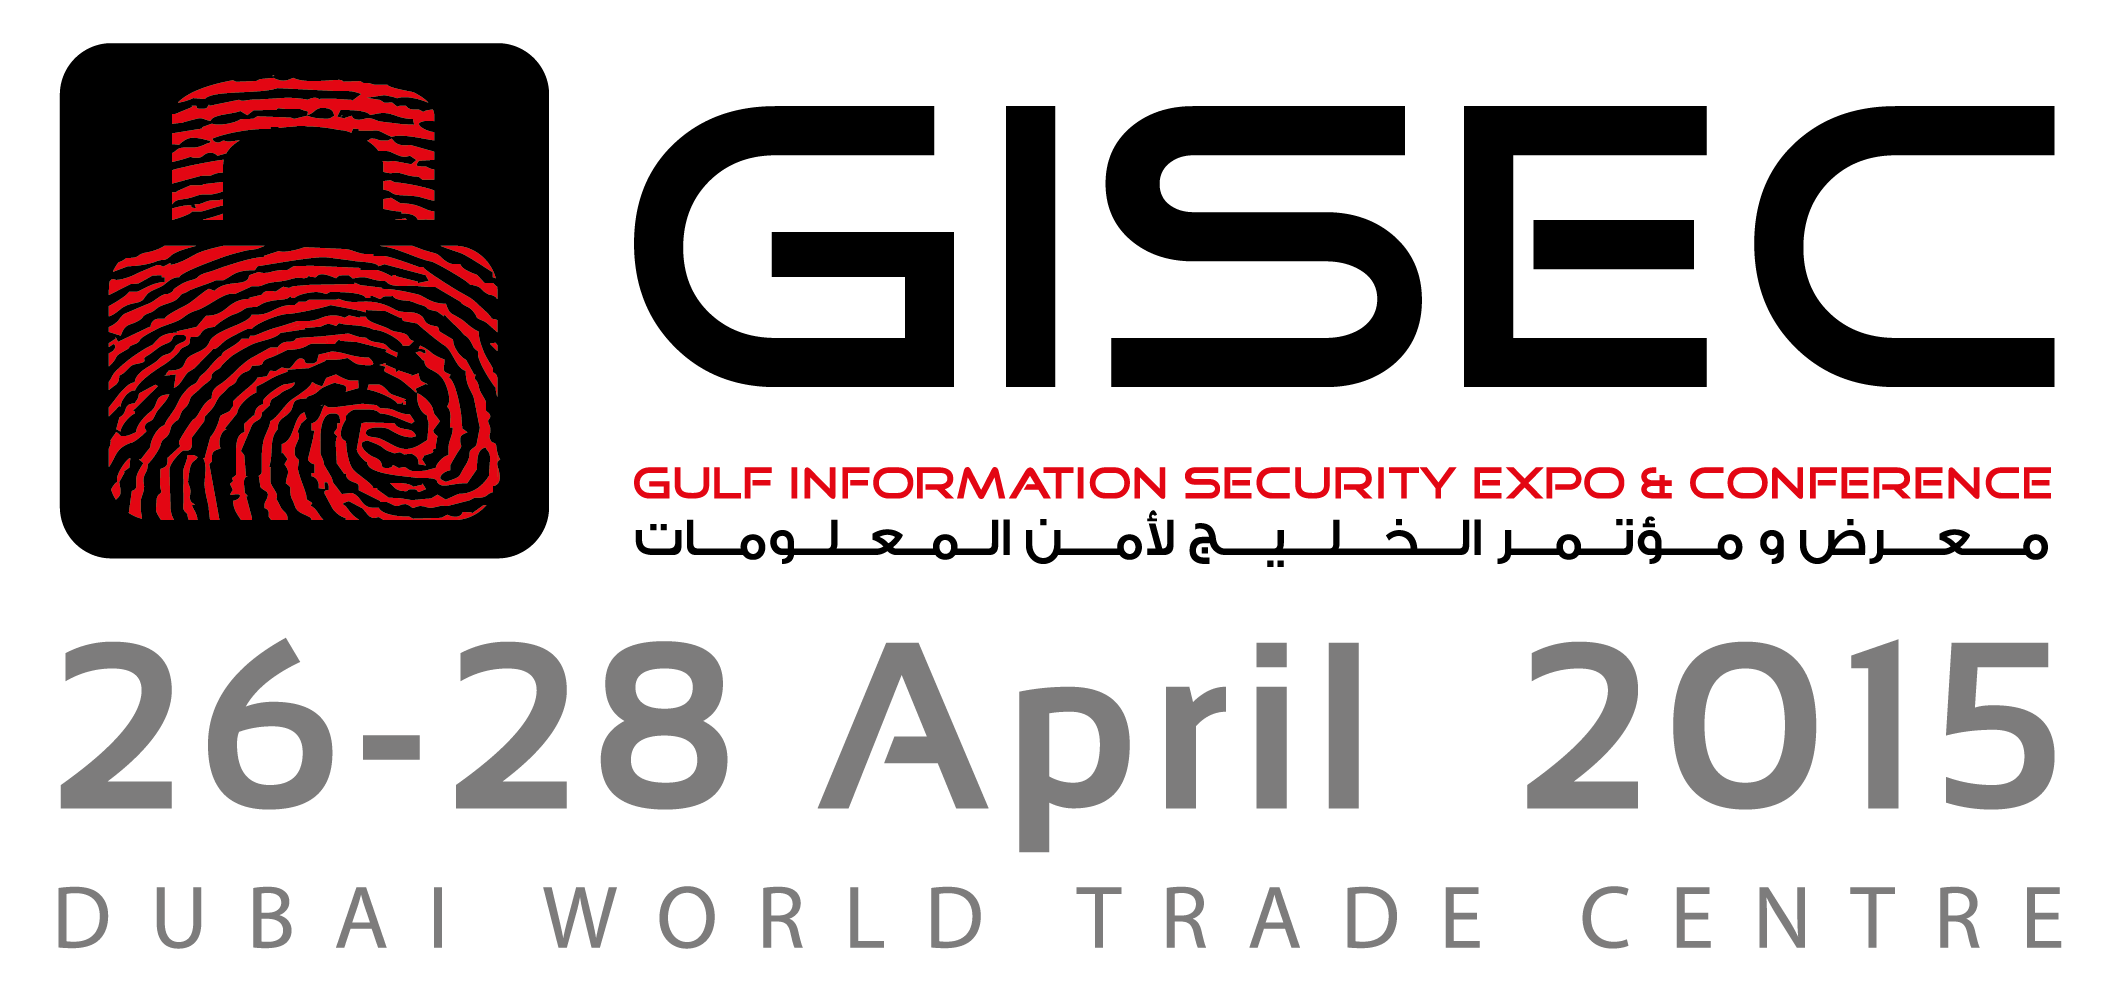 GISEC 2015 in Dubai, UAE | GISEC Conference